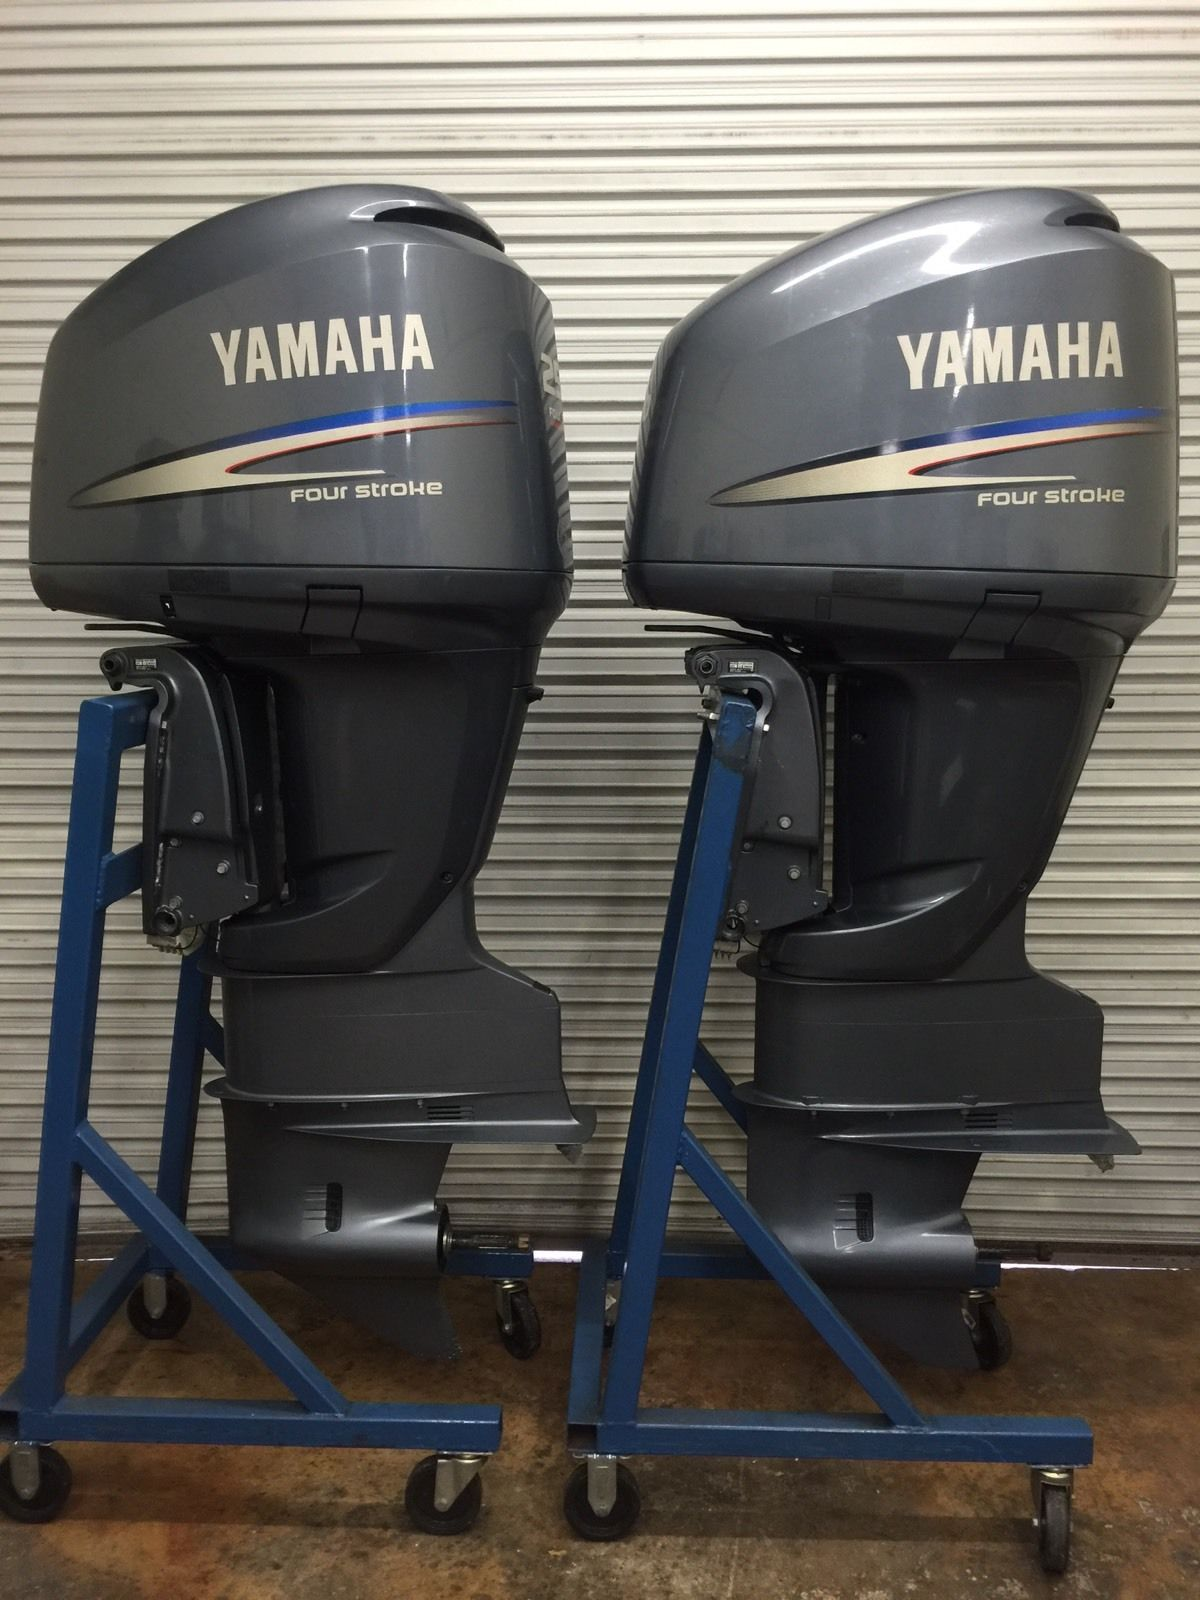 yamaha outboard engines for sale in florida images